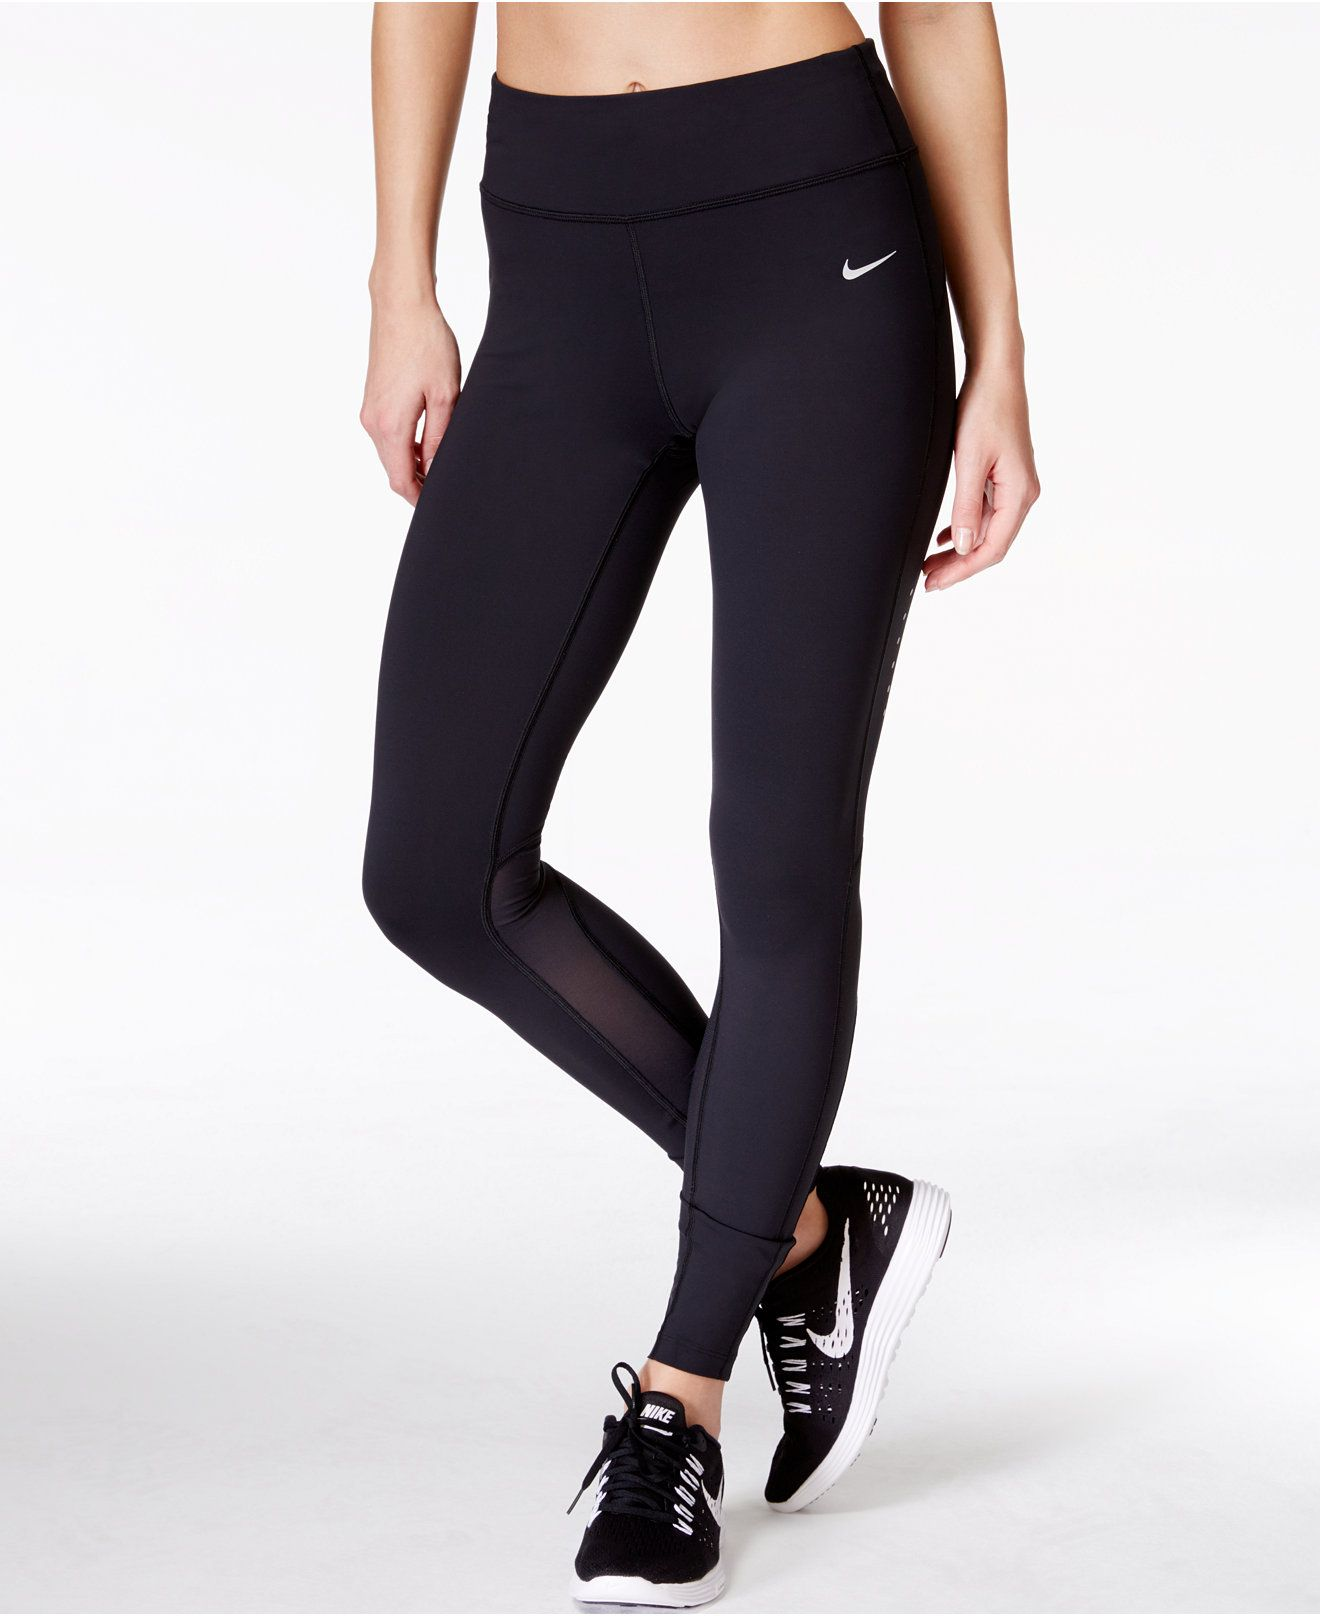 62ae726de32653 Nike Power Epic Lux Dri-FIT Leggings - Pants - Women - Macy's ...